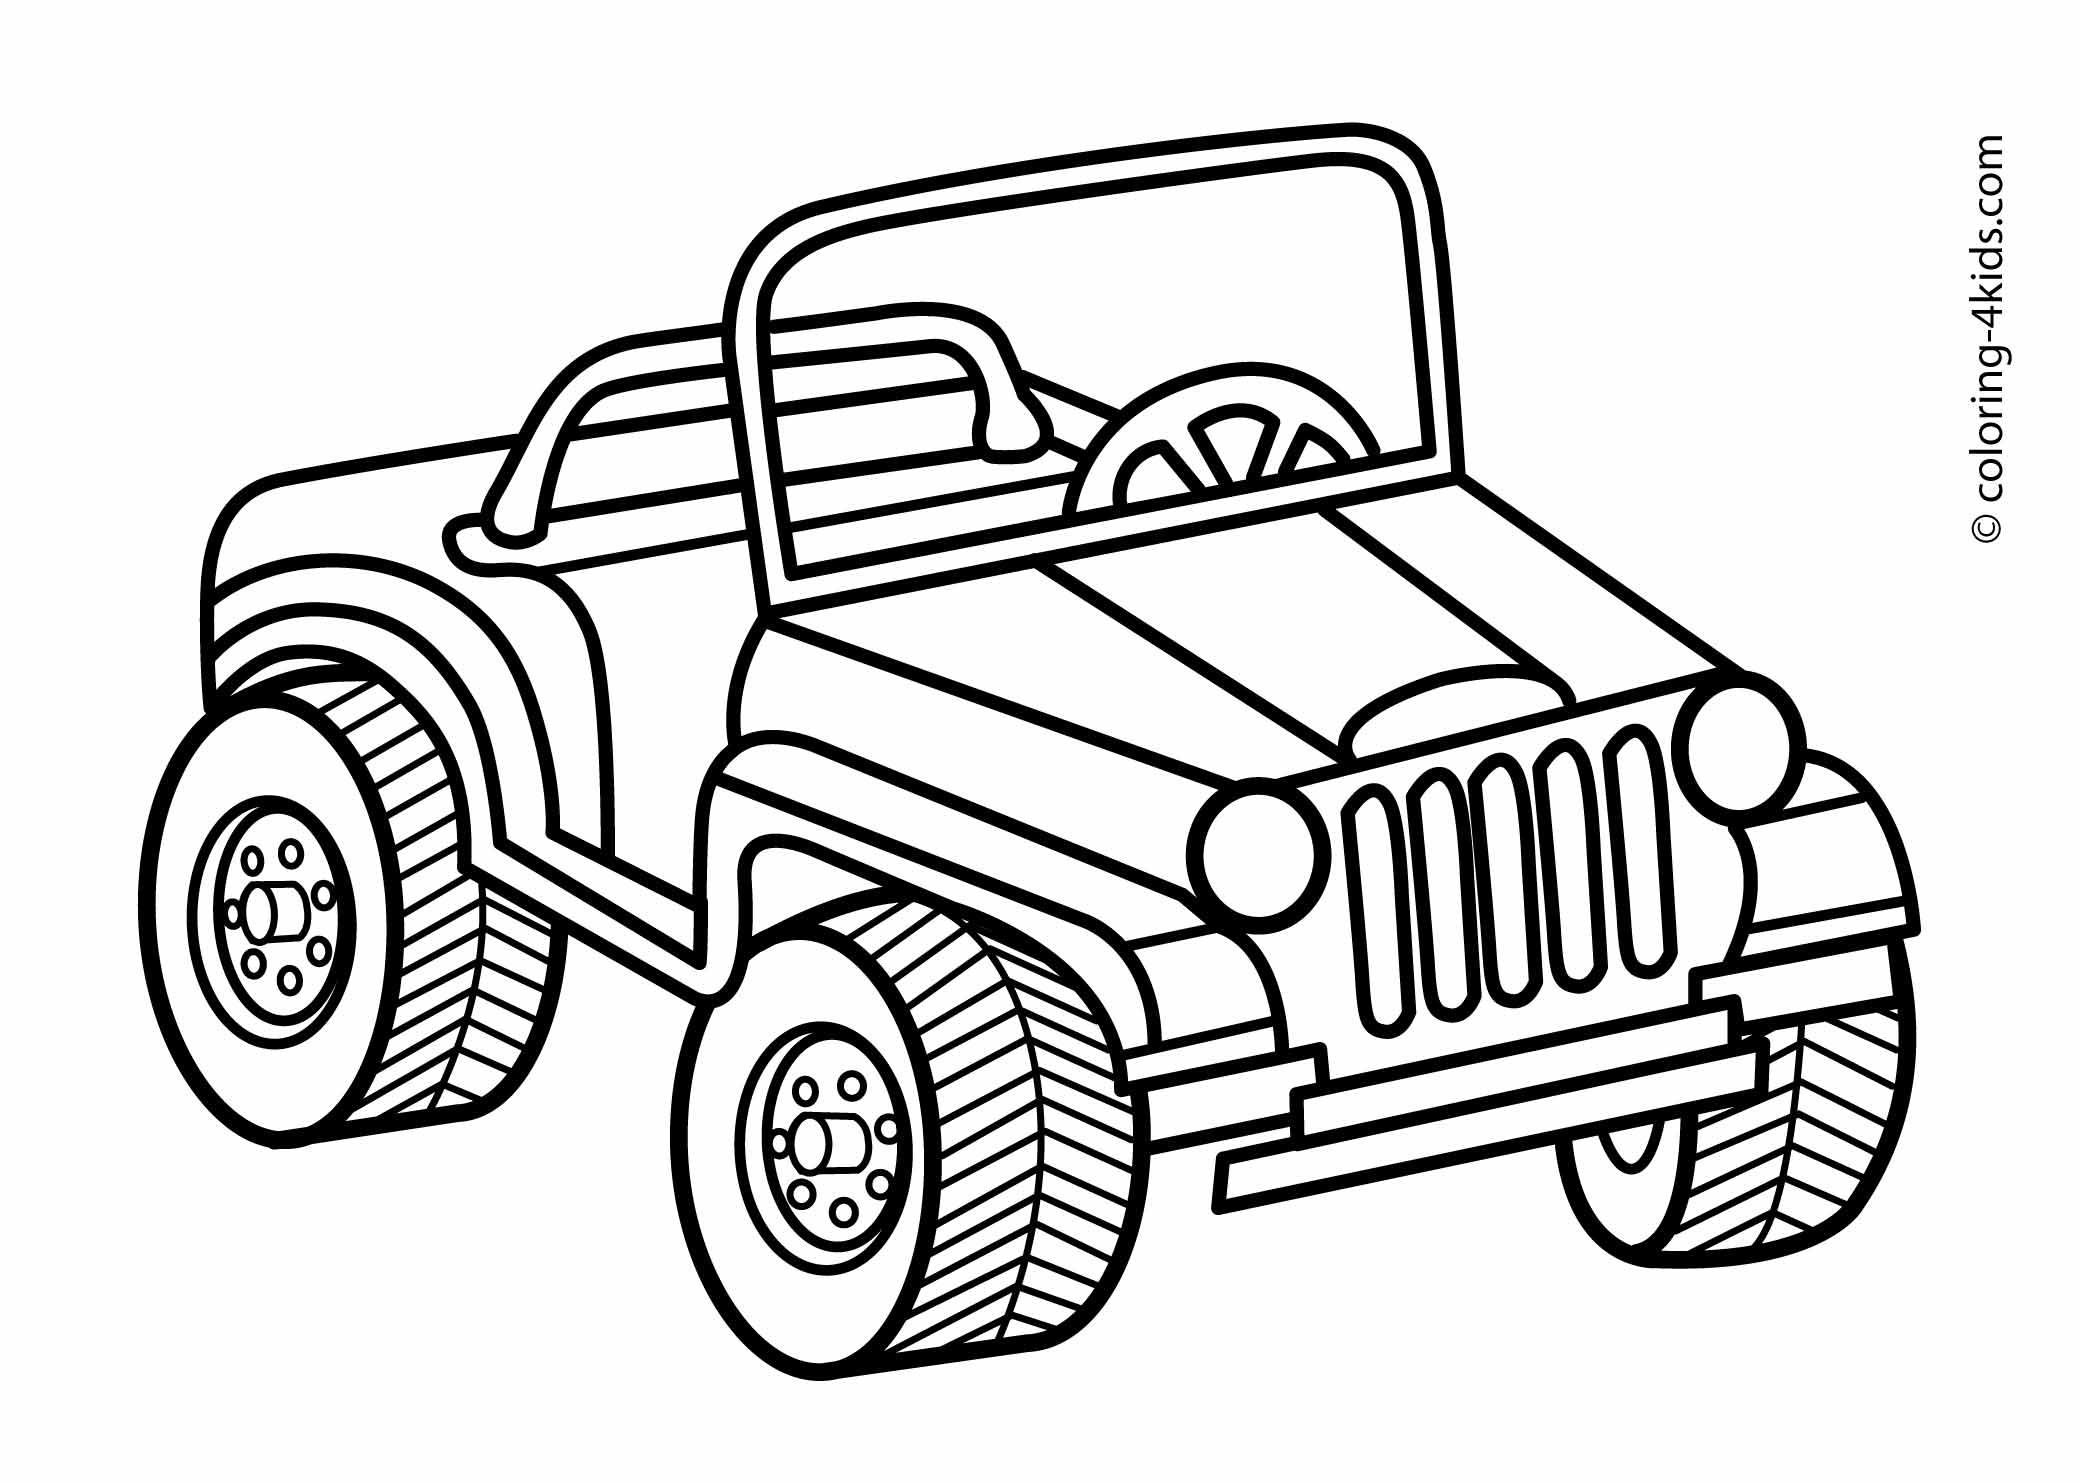 Jeep transportation coloring pages for kids, printable | Jungle ...